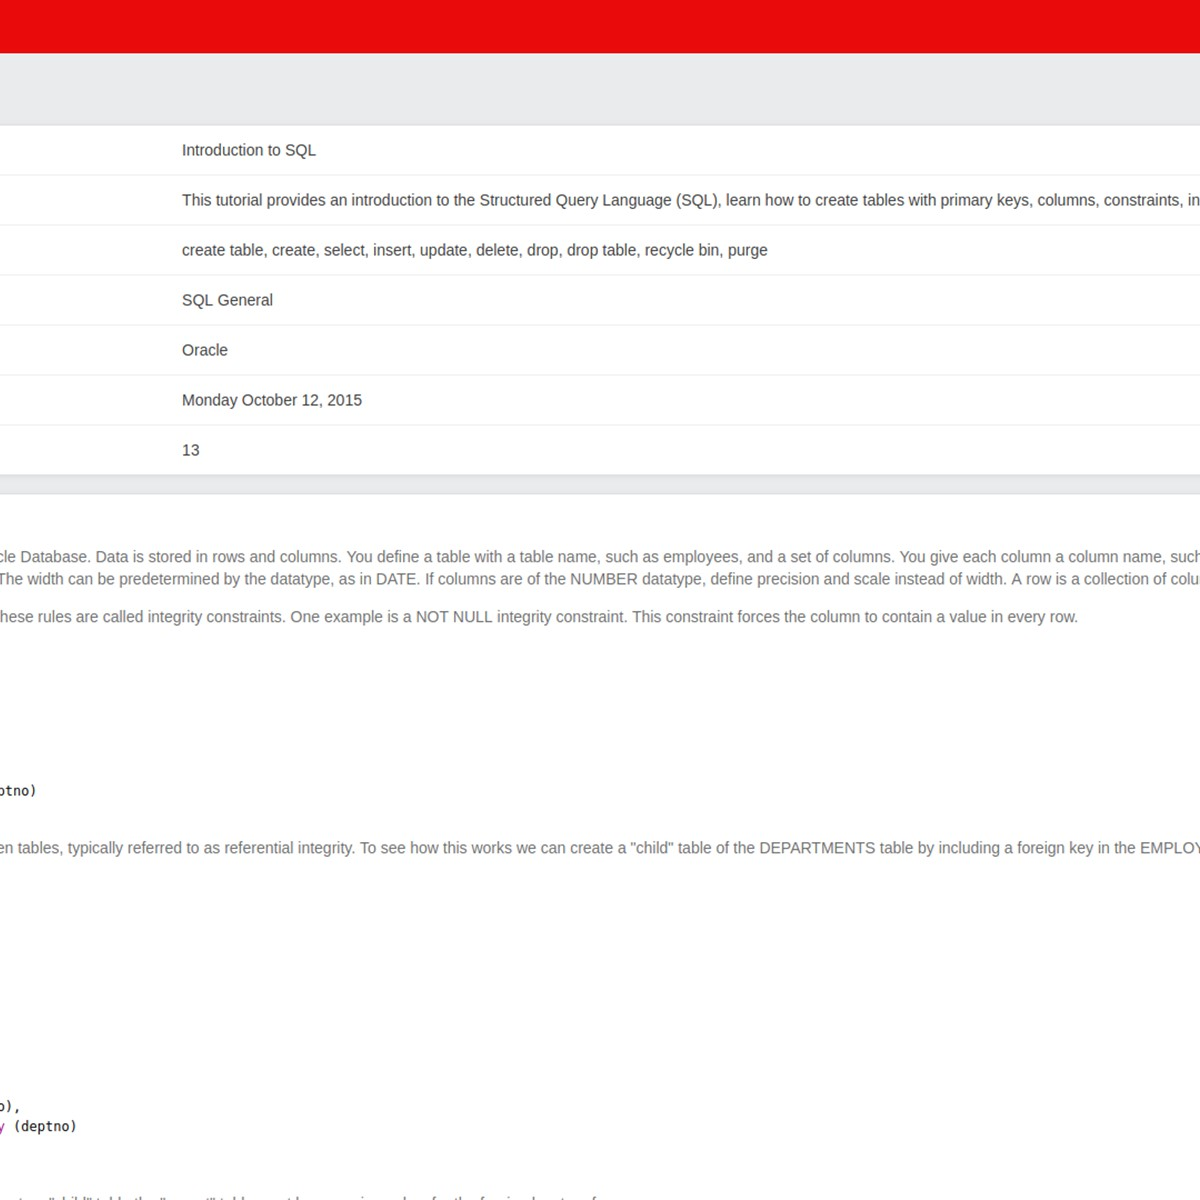 Oracle Live SQL Alternatives and Similar Websites and Apps